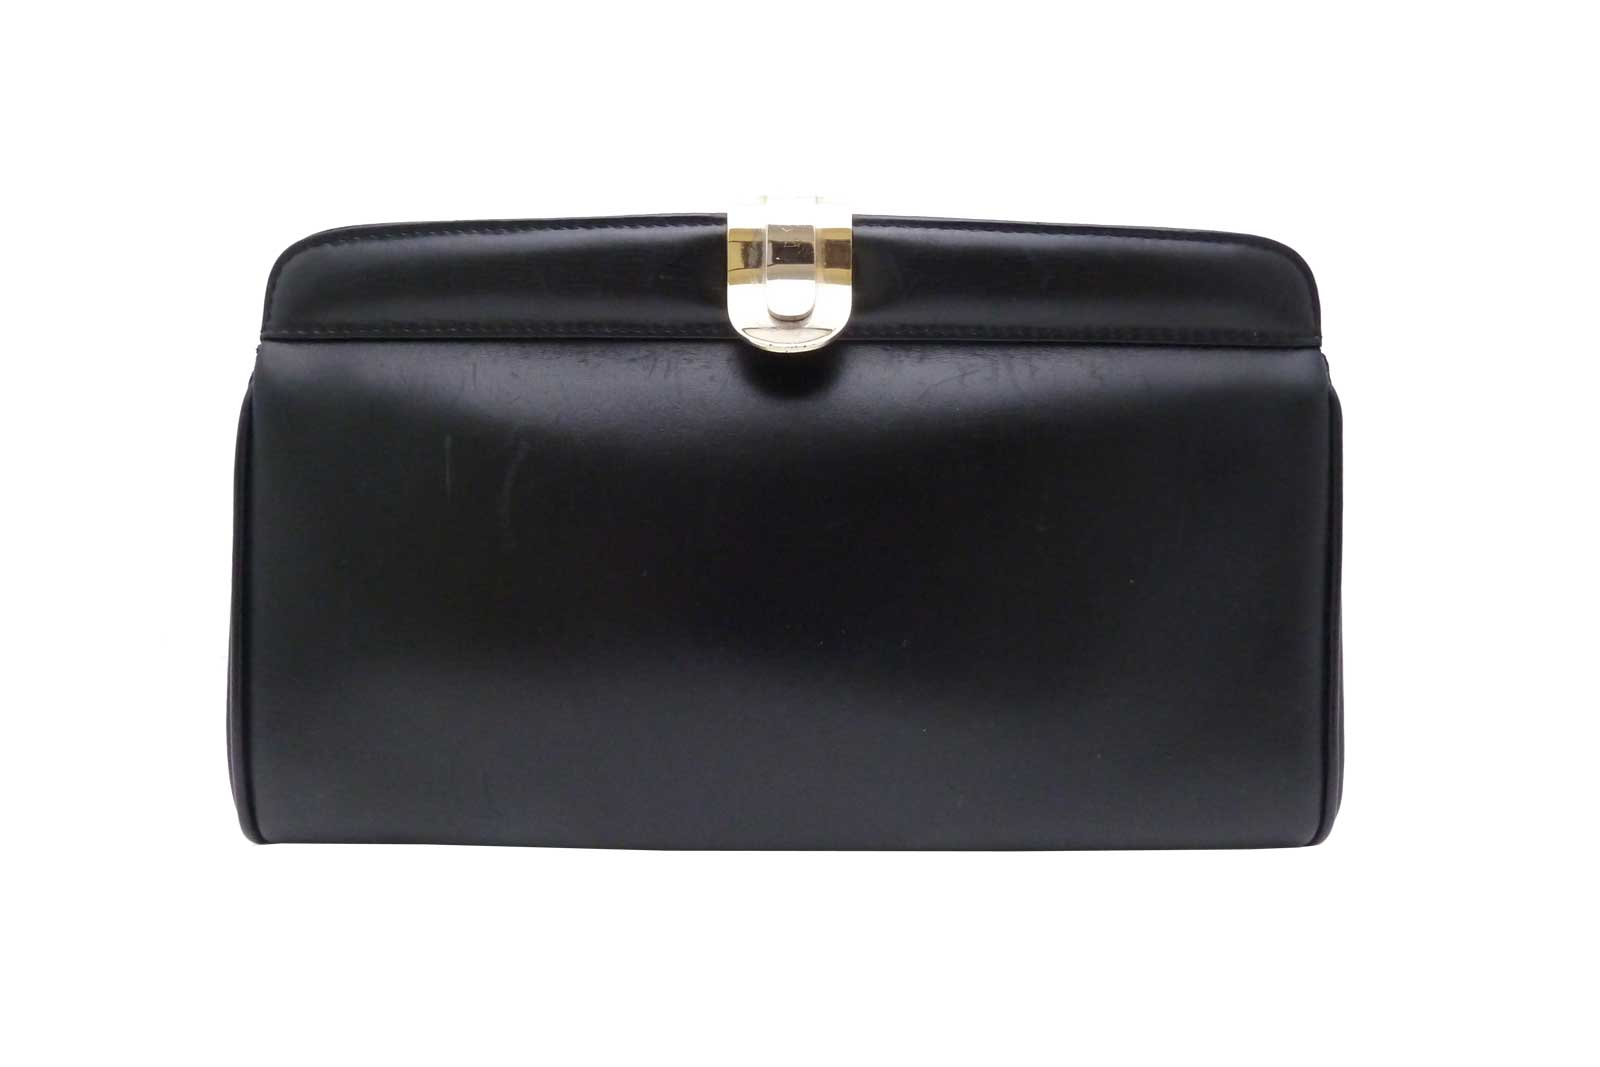 Find great deals on eBay for black leather clutch purse. Shop with confidence.